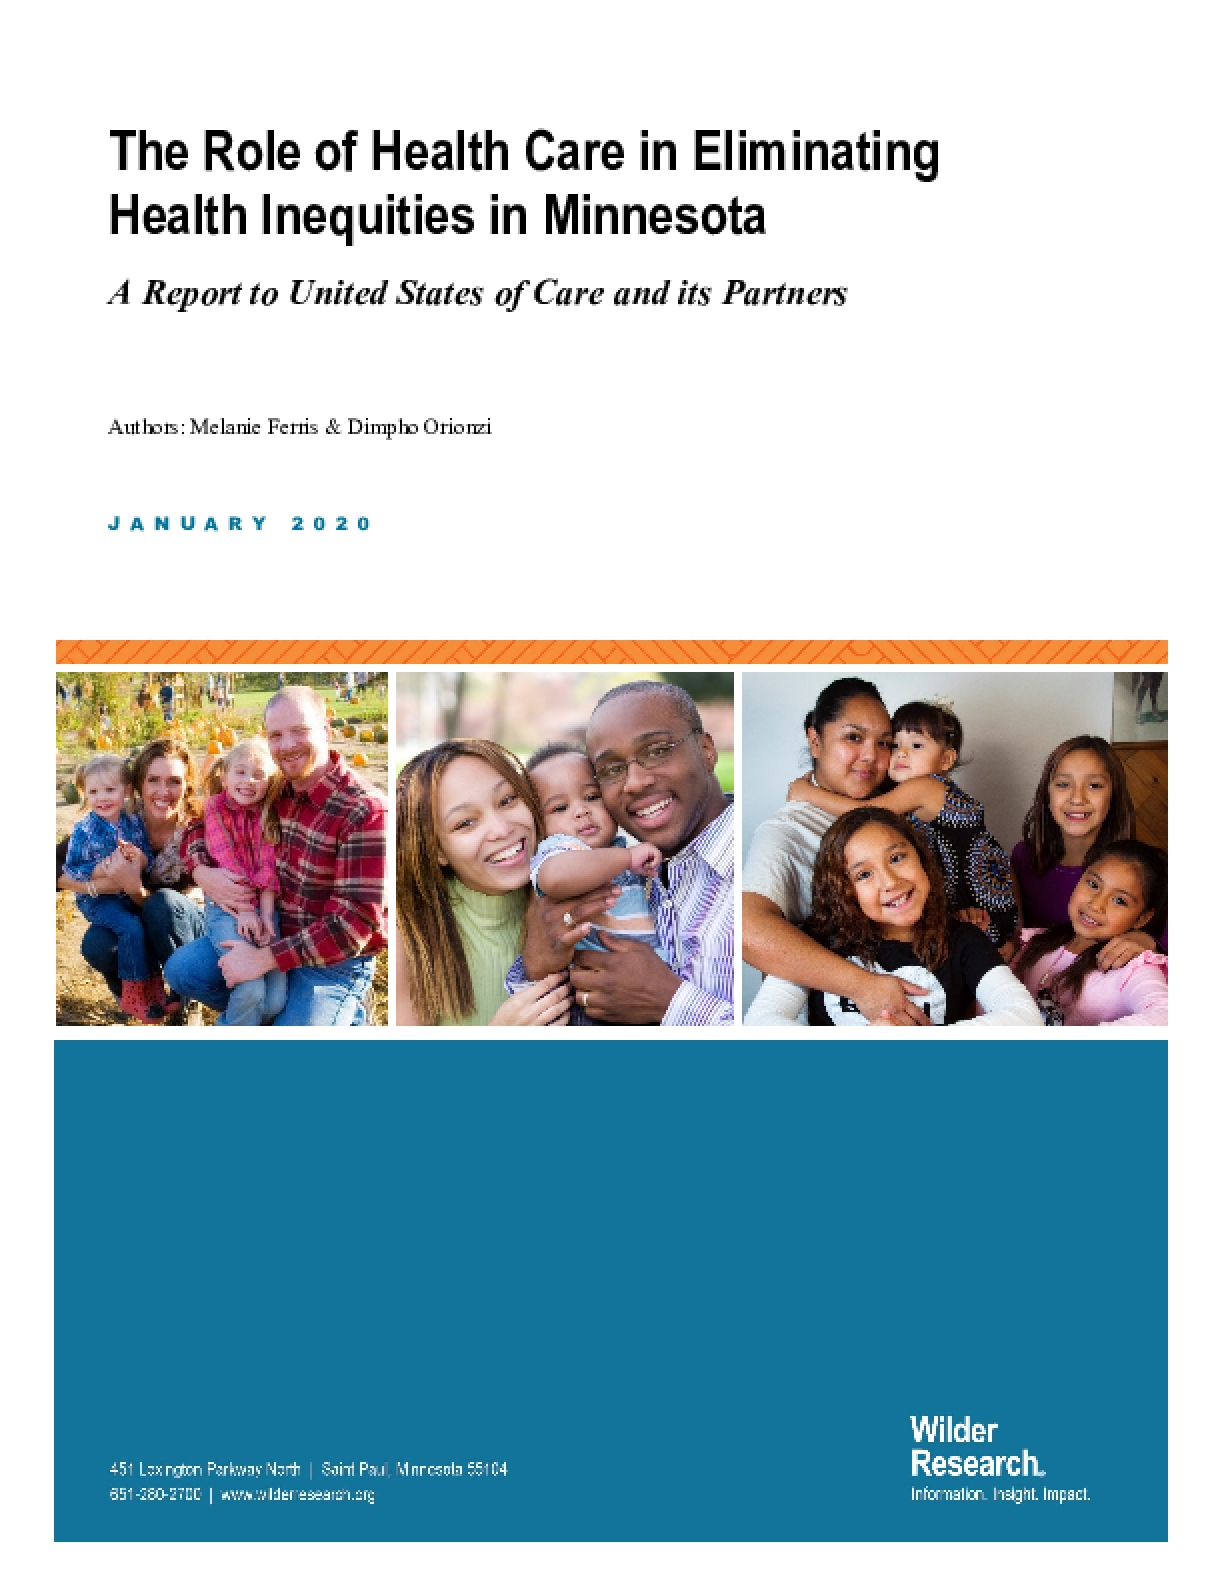 The Role of Health Care in Eliminating Health Inequities in Minnesota: A Report to United States of Care and its Partners